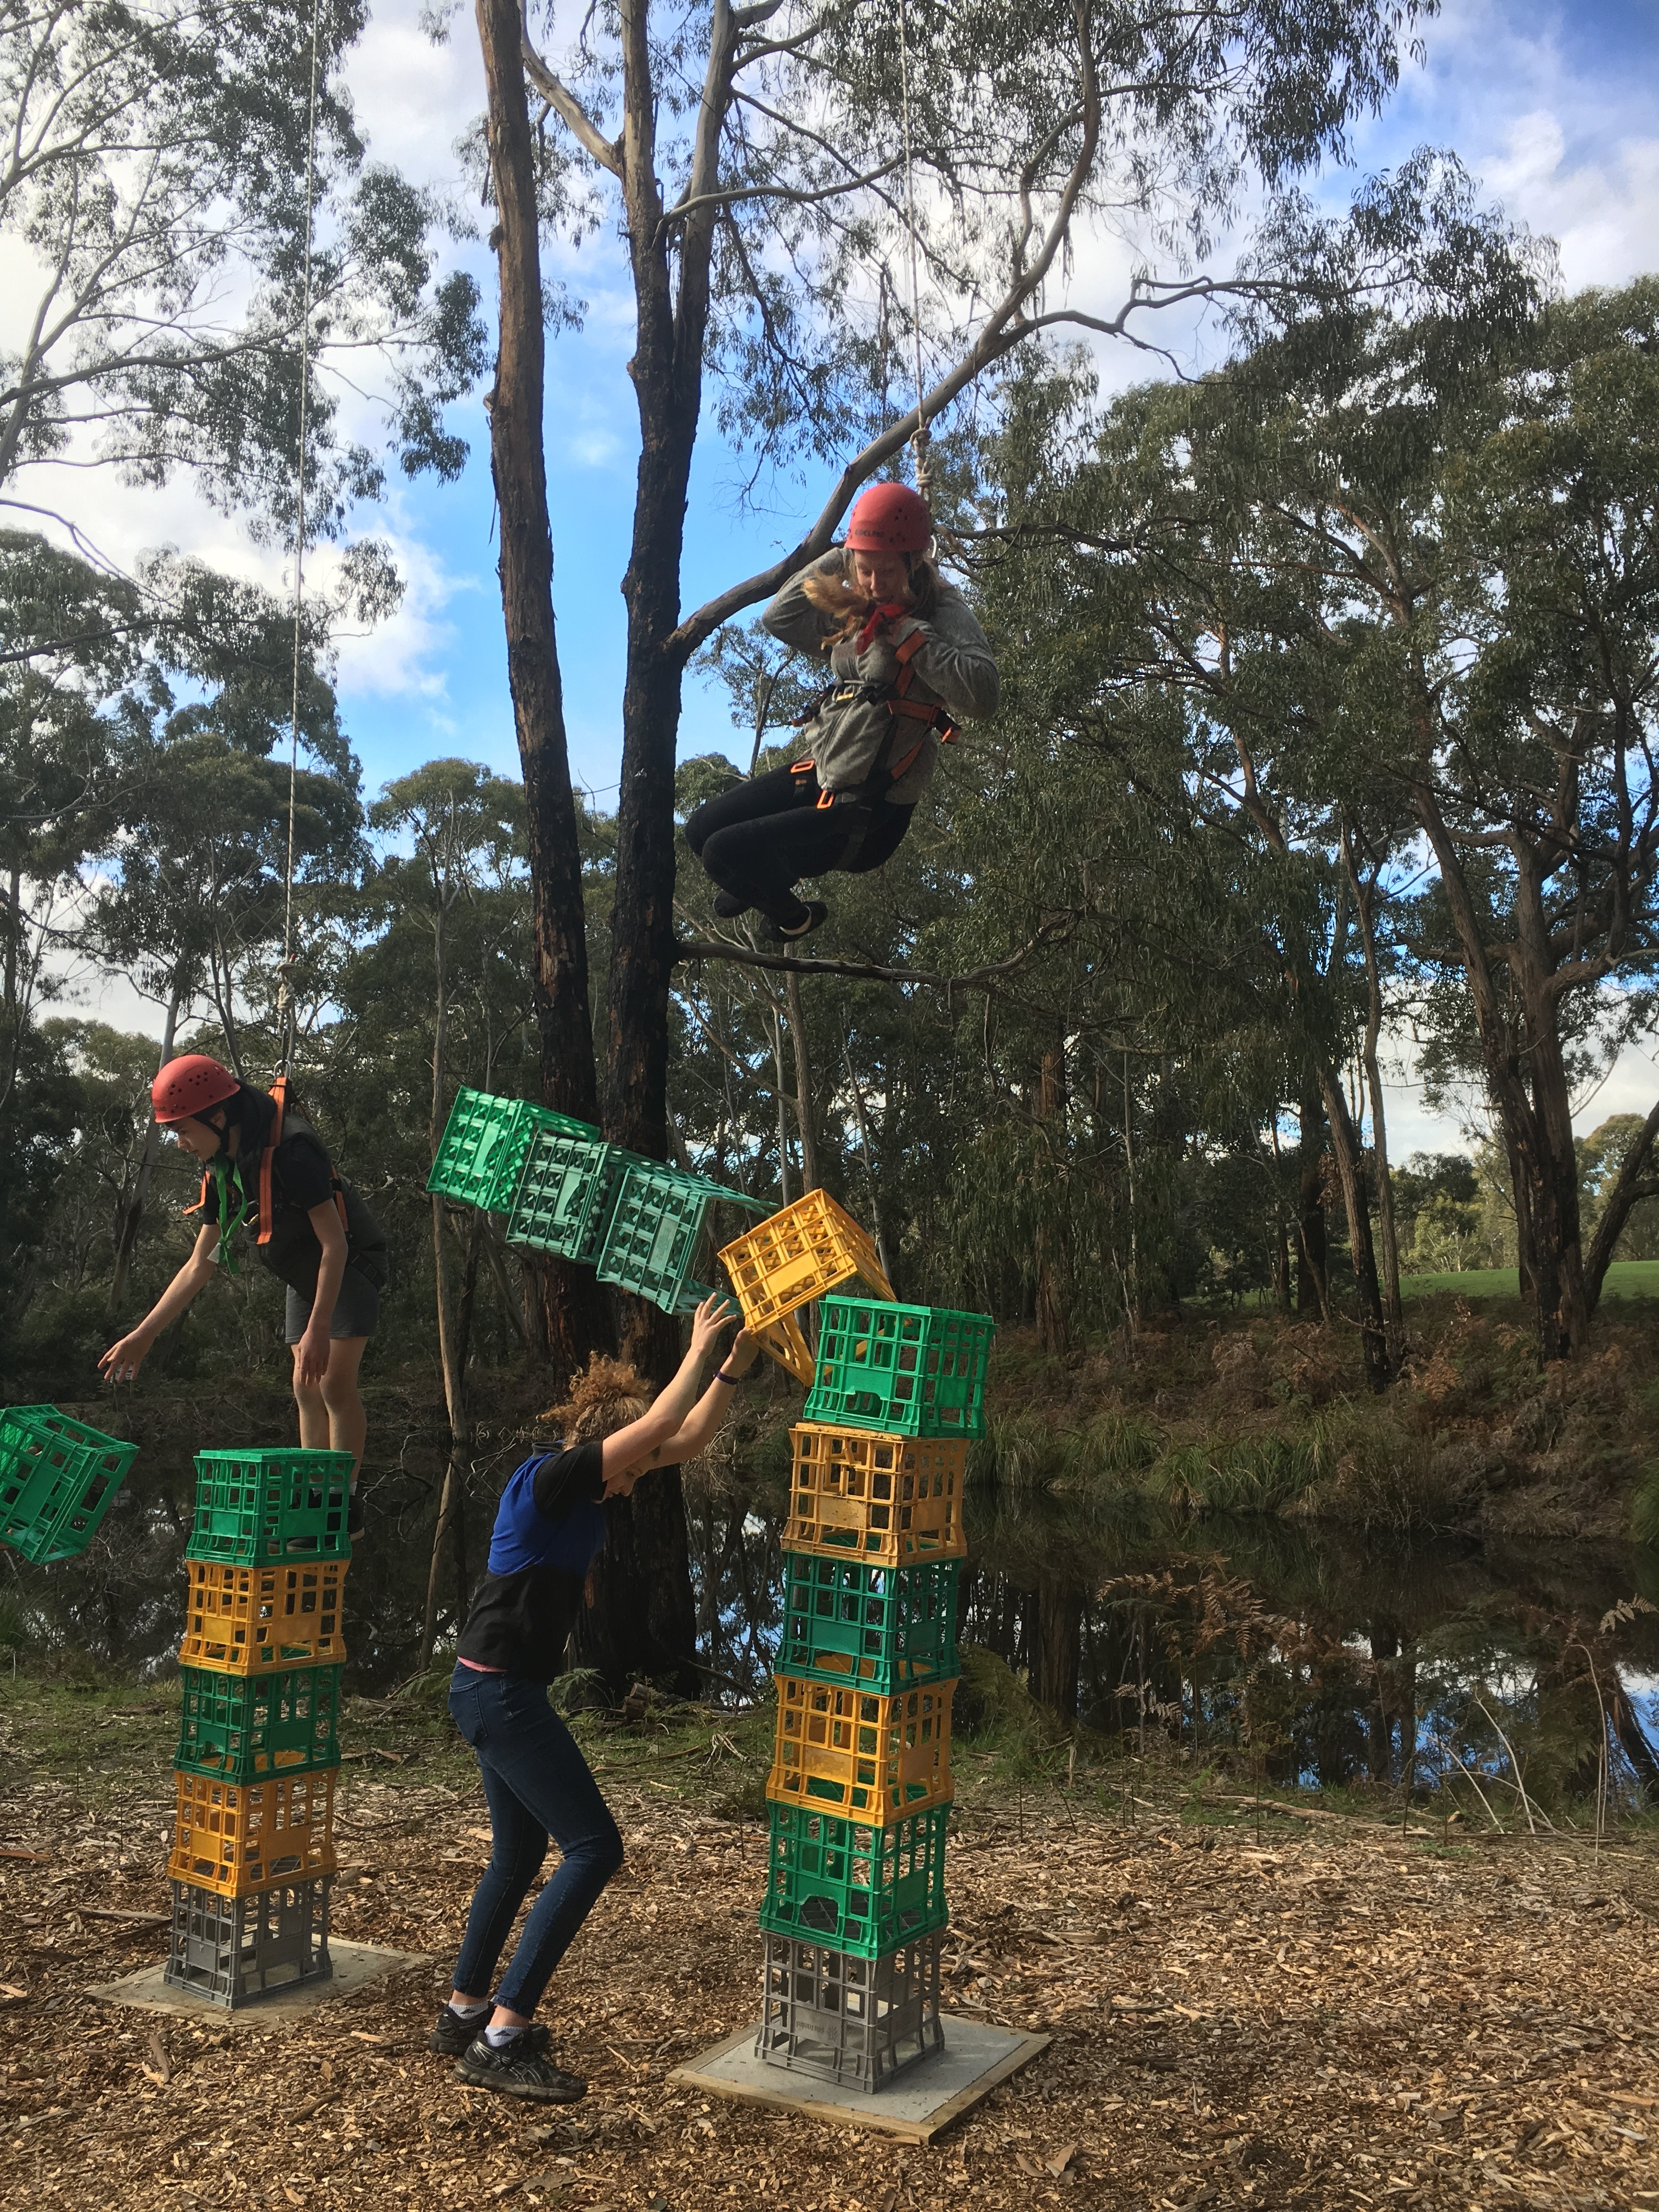 Crate Stacking can go wrong...